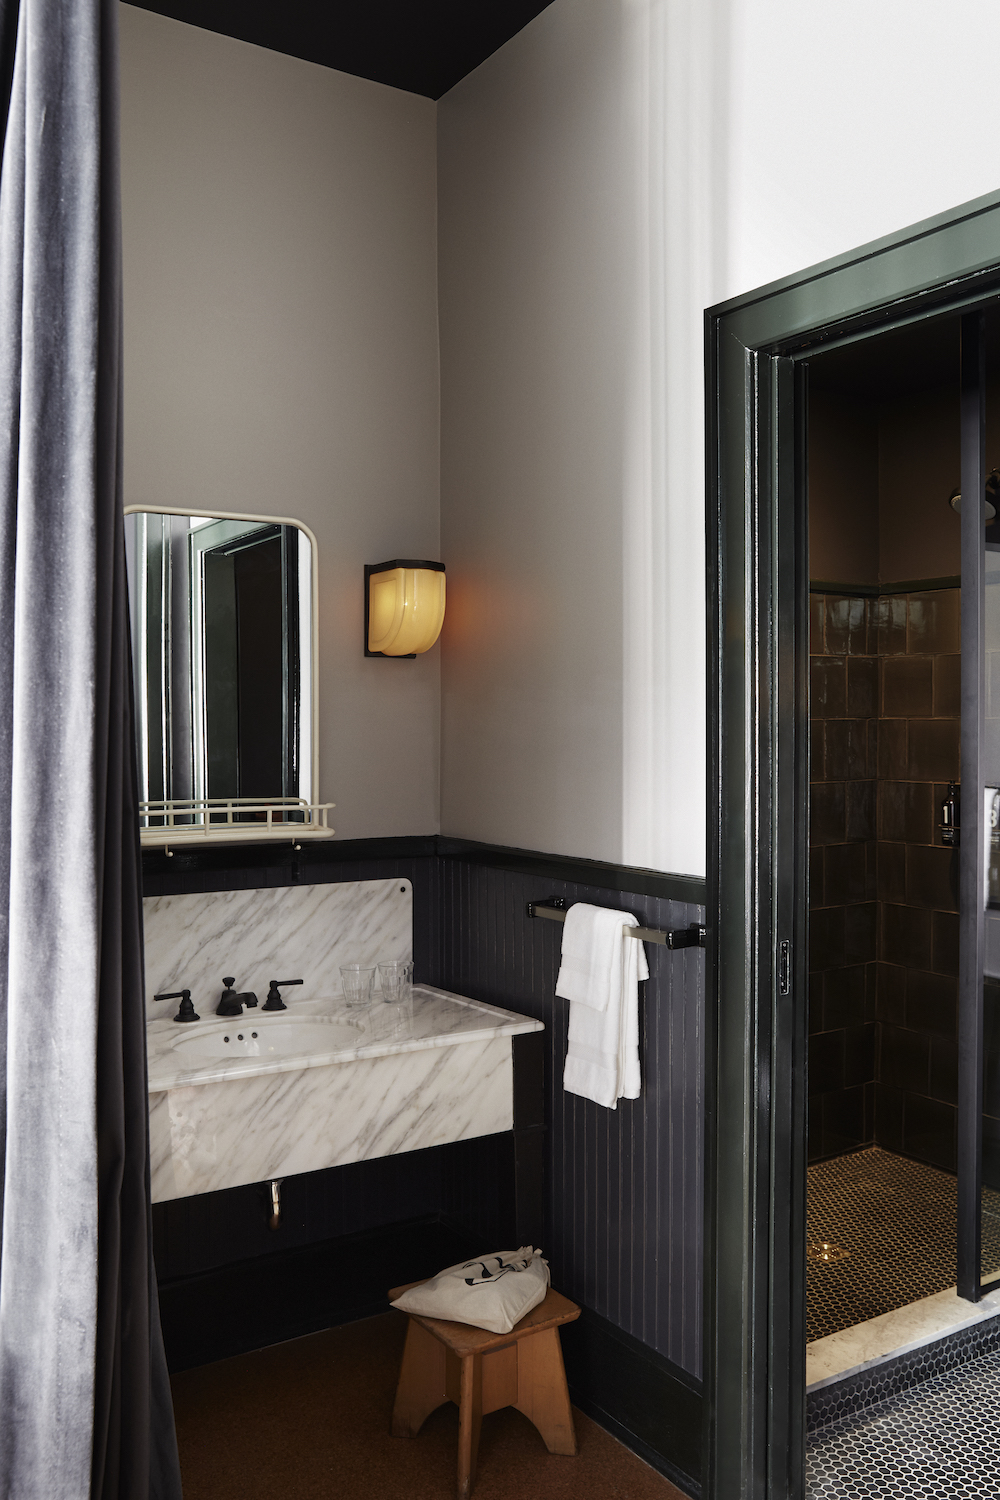 Ace-Hotel-New-Orleans-Remodelista-5.jpg